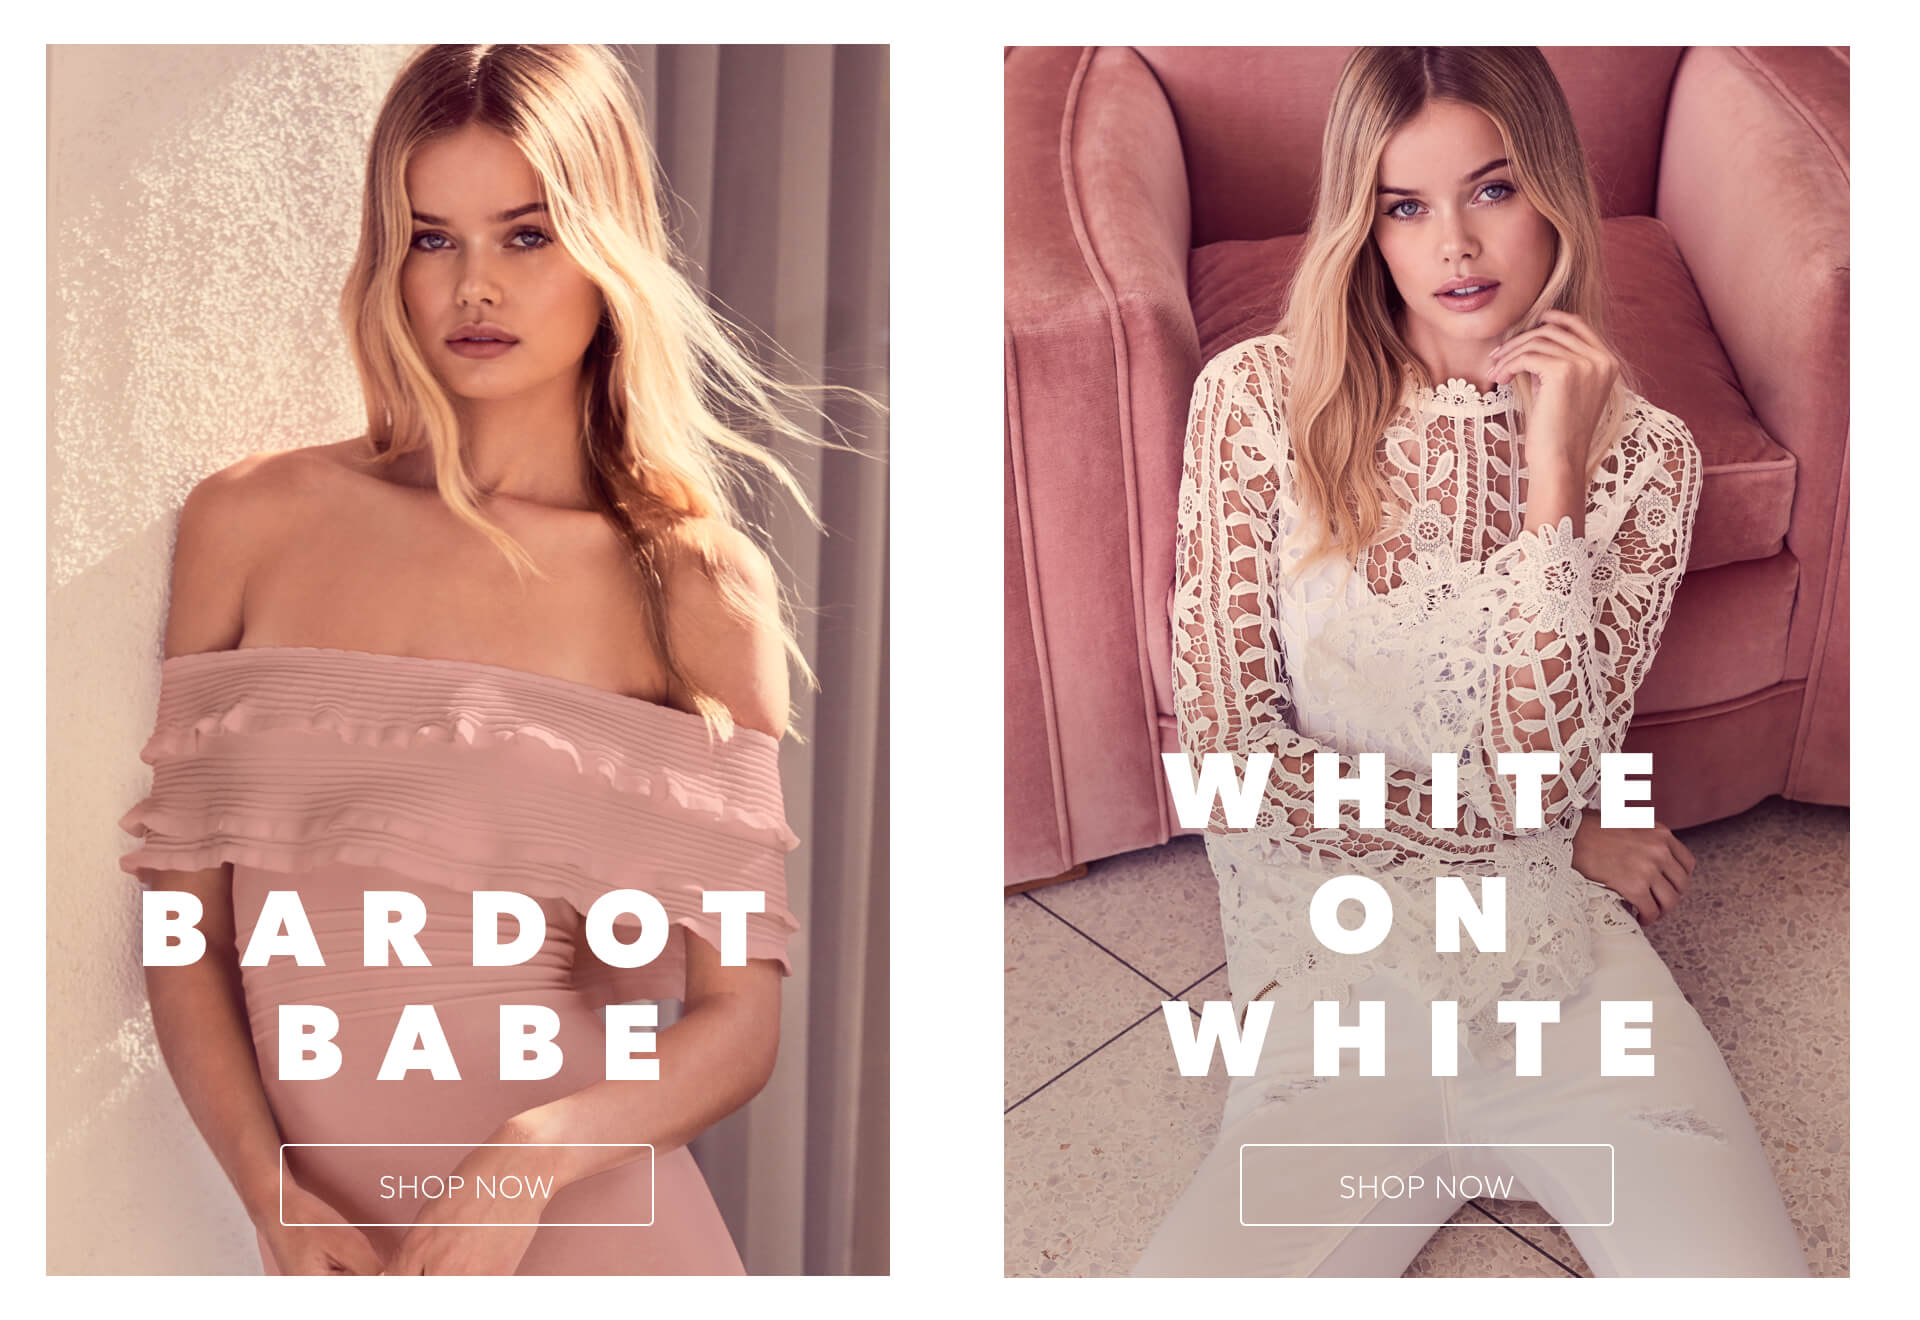 Bardot & WHITE ON WHITE